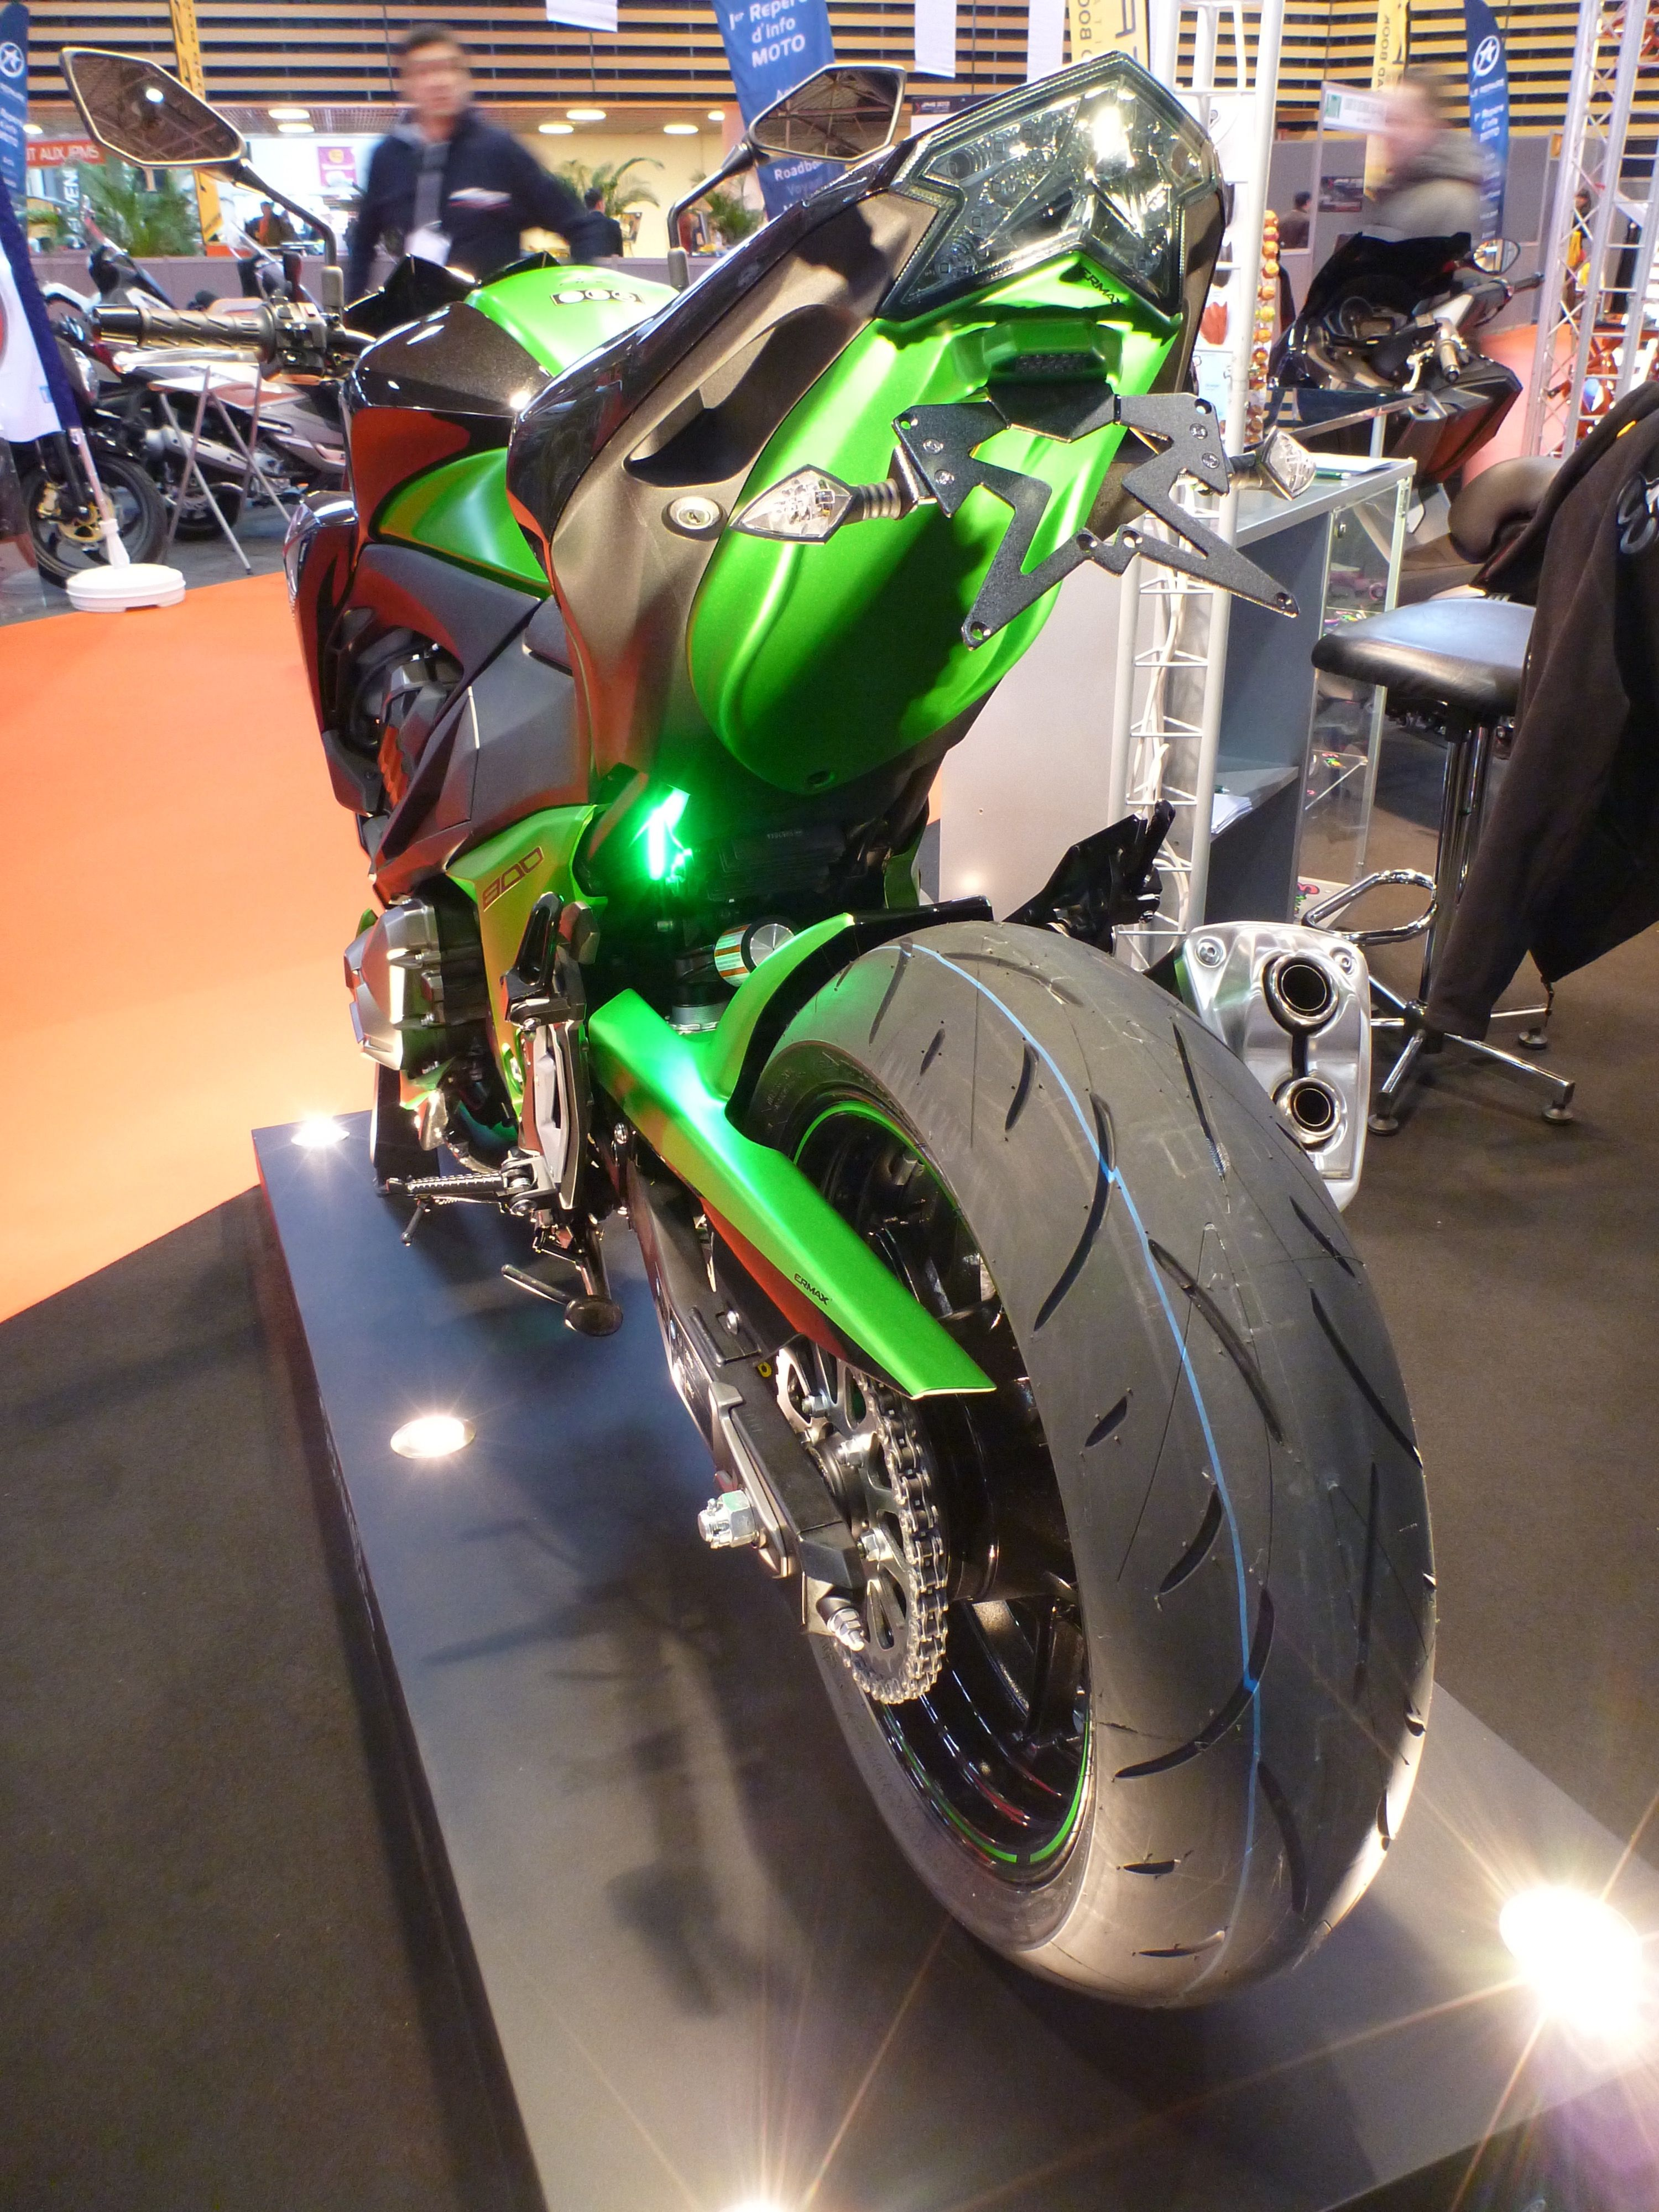 z 800 under tail at jpms lyon france kawasaki z800 pinterest motos and sportif. Black Bedroom Furniture Sets. Home Design Ideas